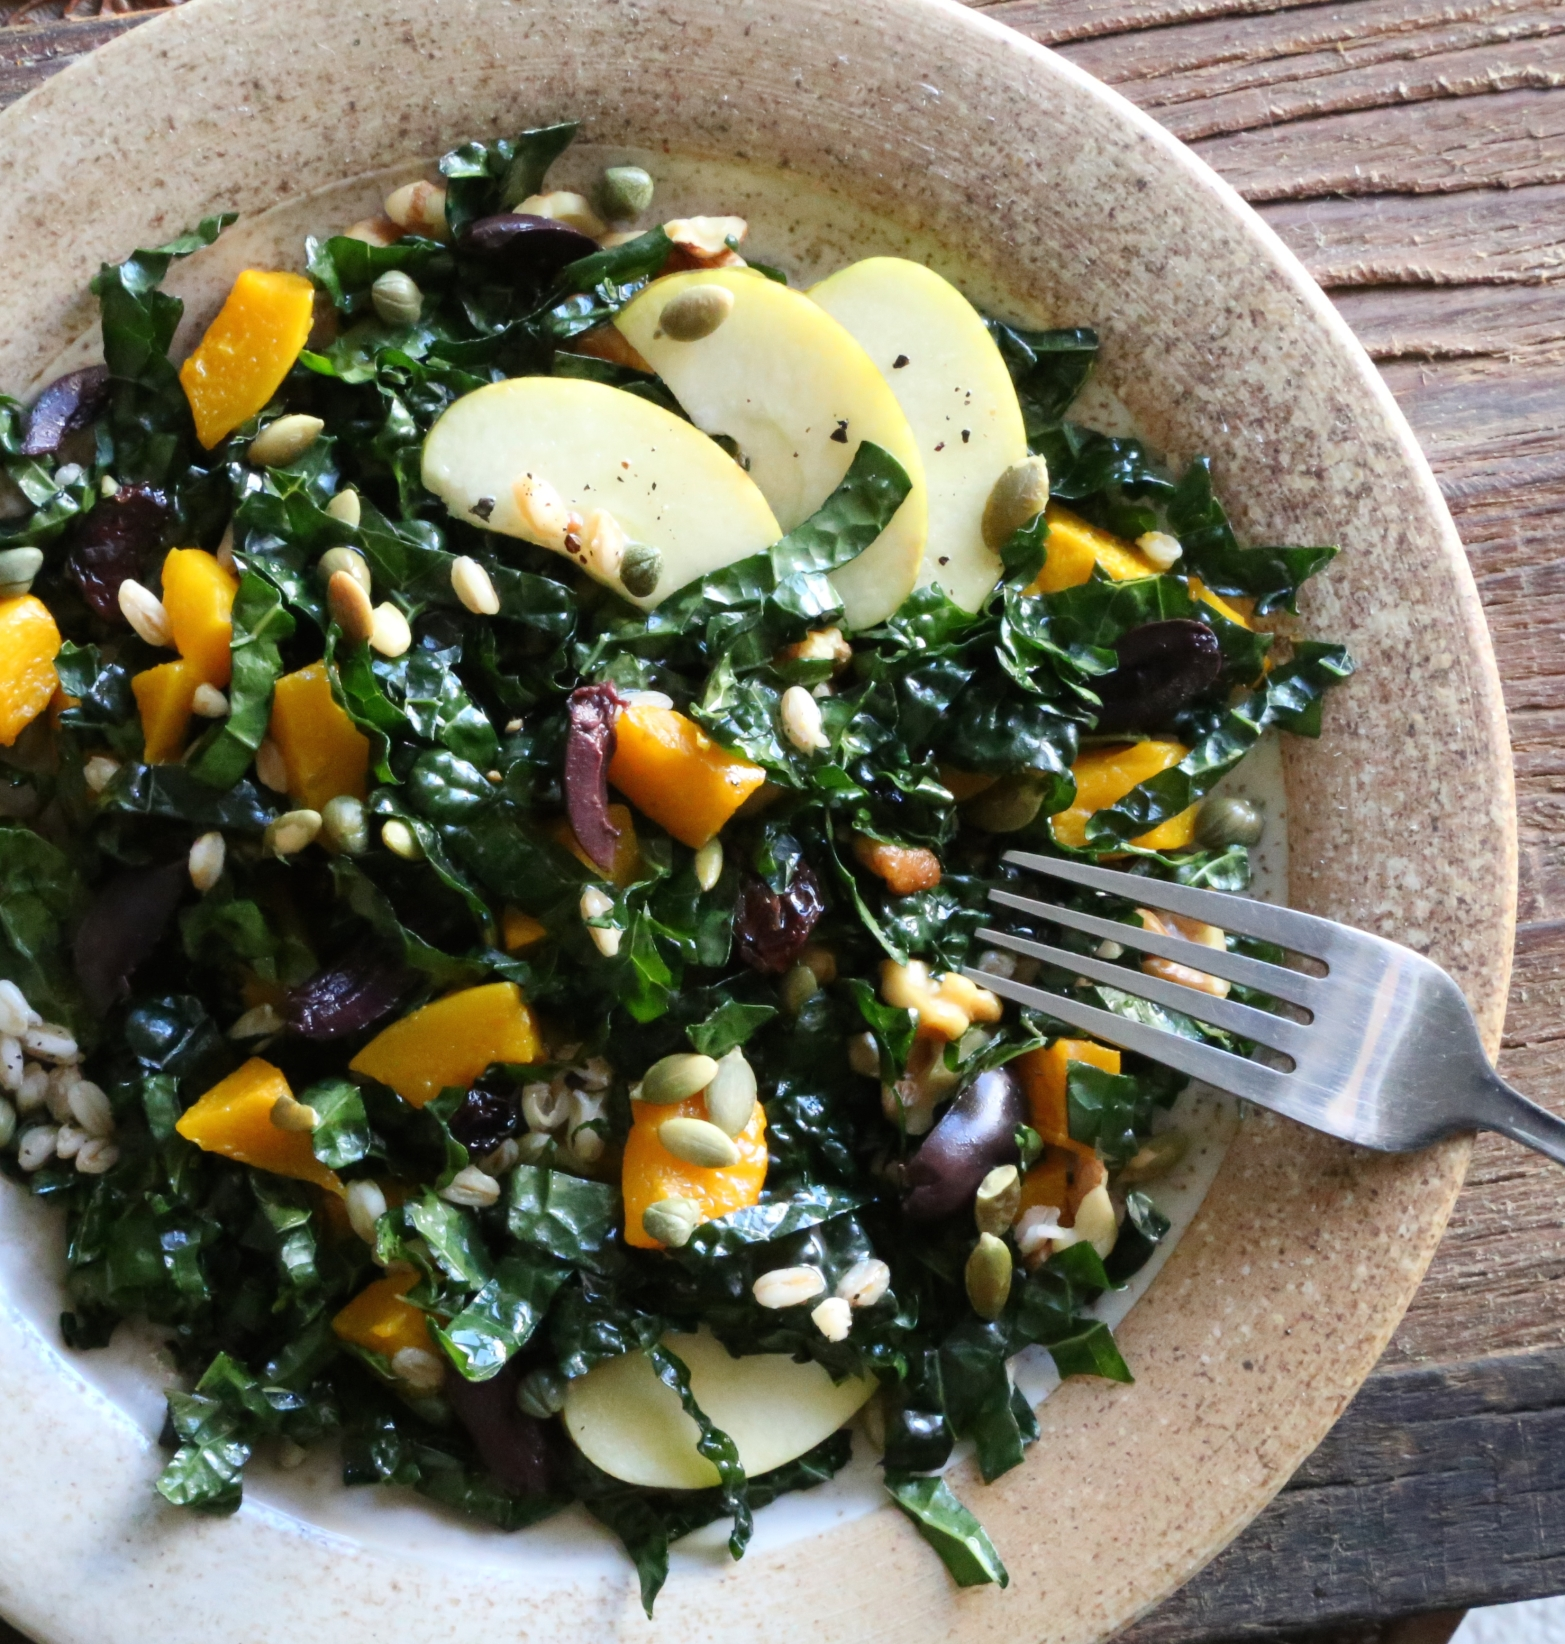 Kale and Kabocha Squash Salad